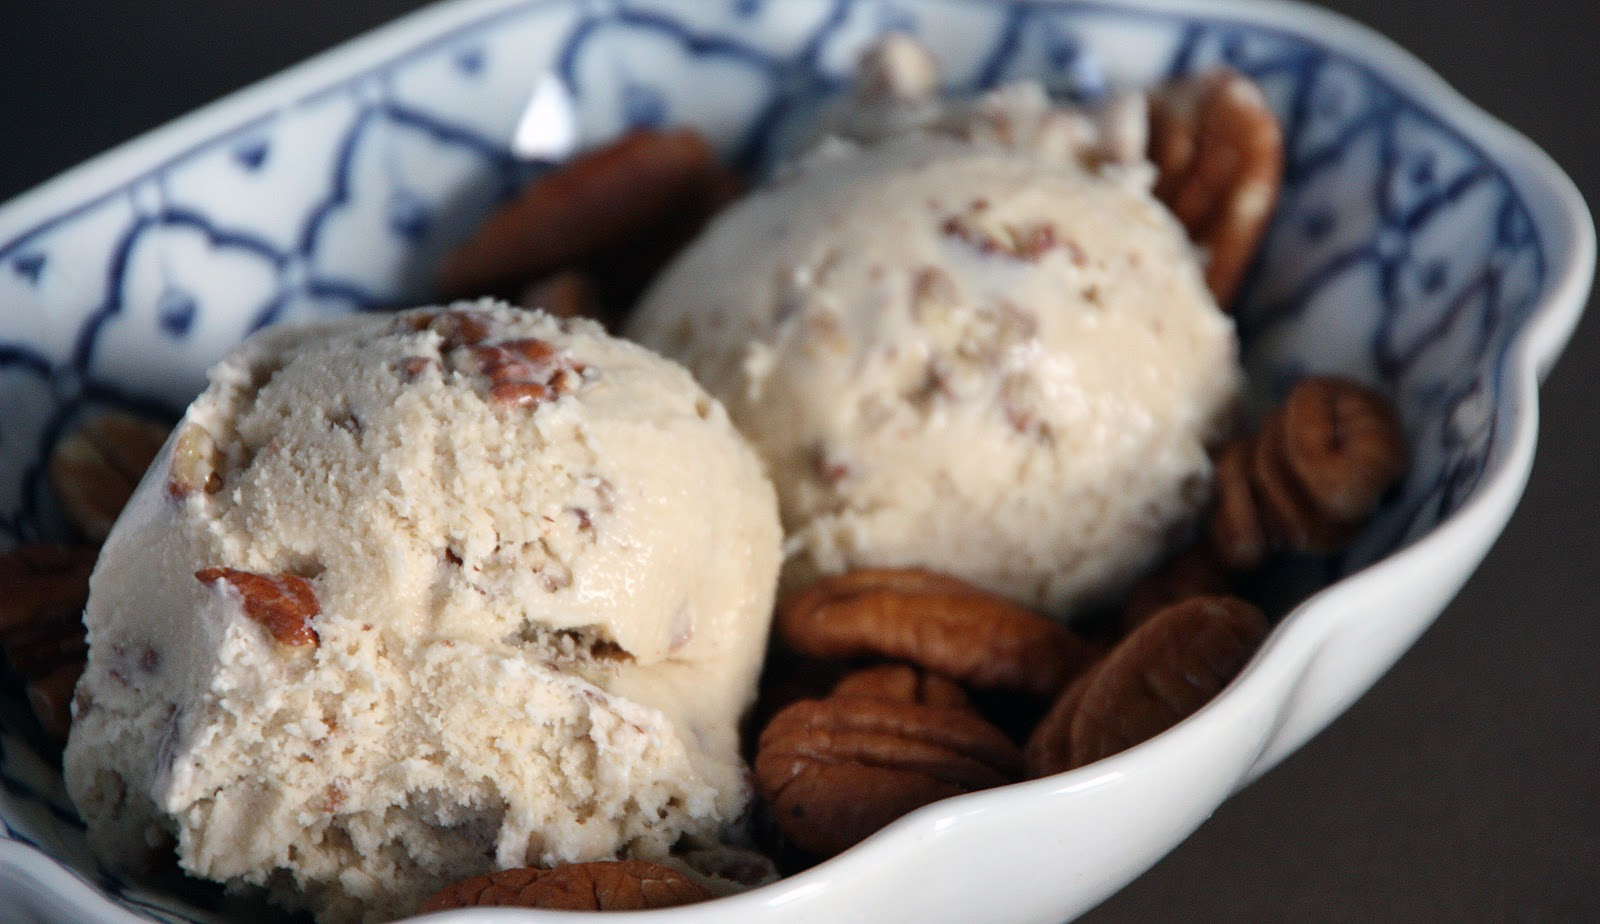 Sprinkle Charms: Butter Pecan Ice Cream